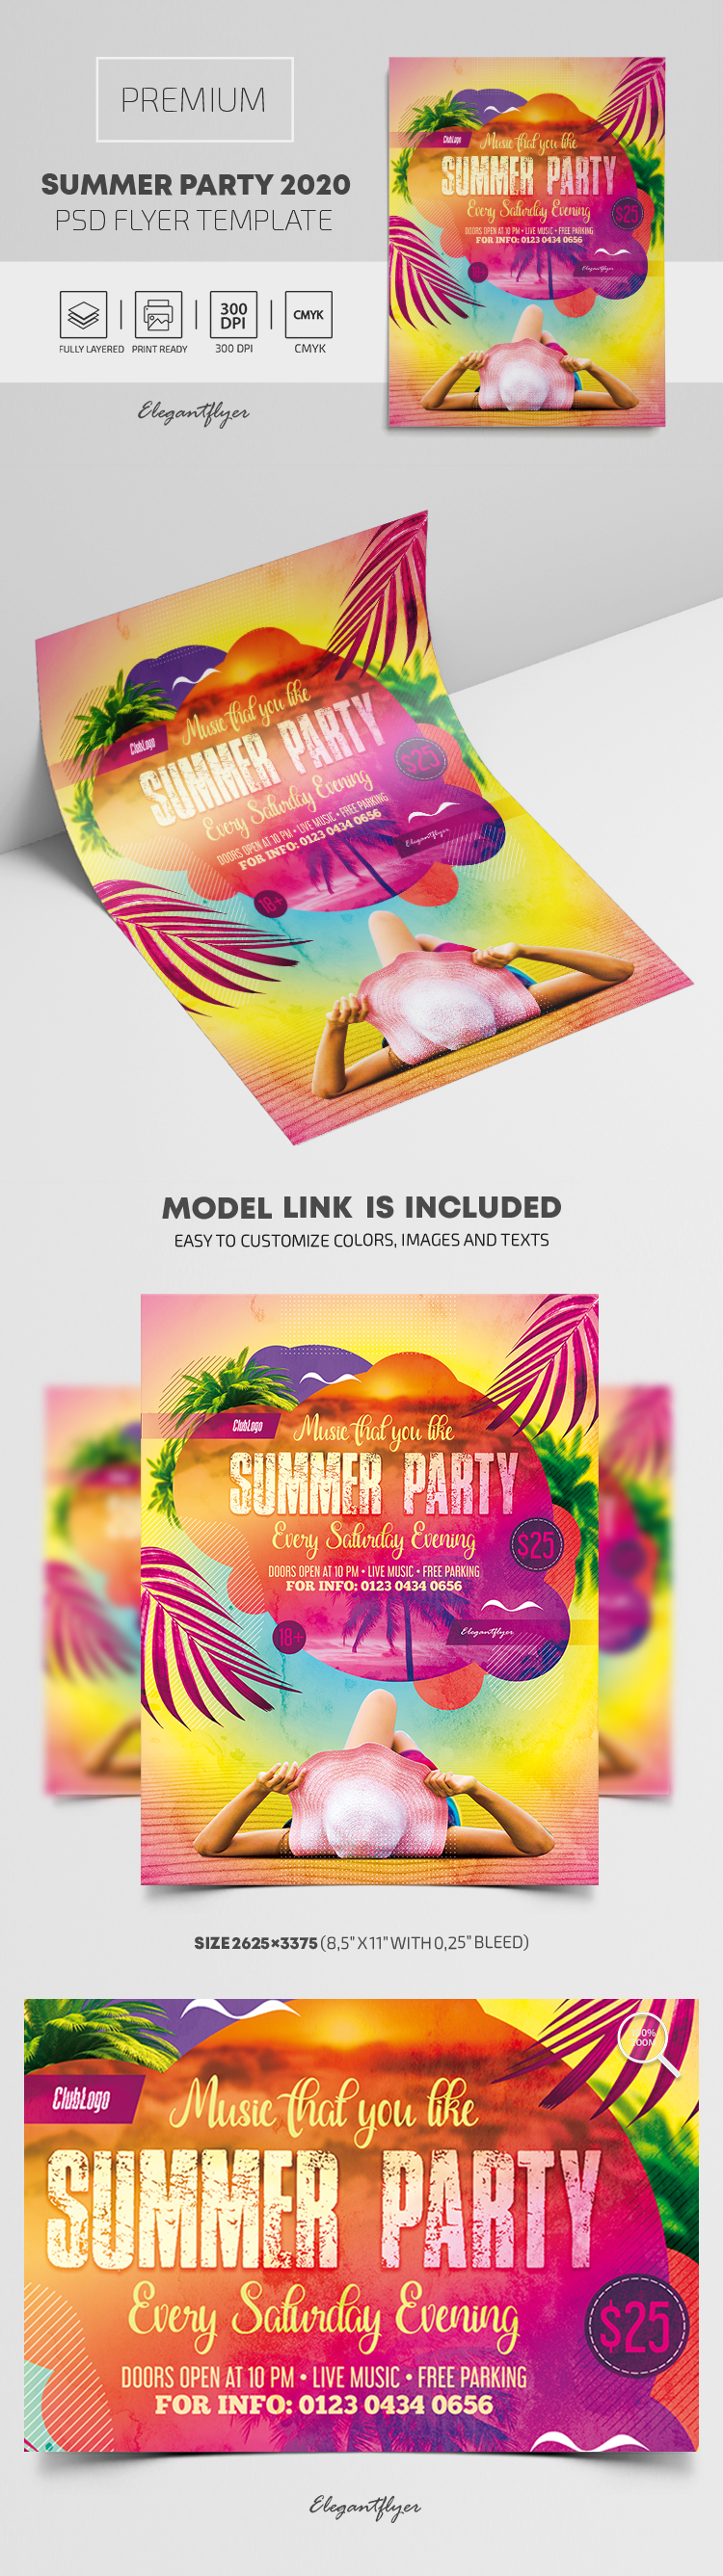 Summer Party 2020 – Premium PSD Flyer Template